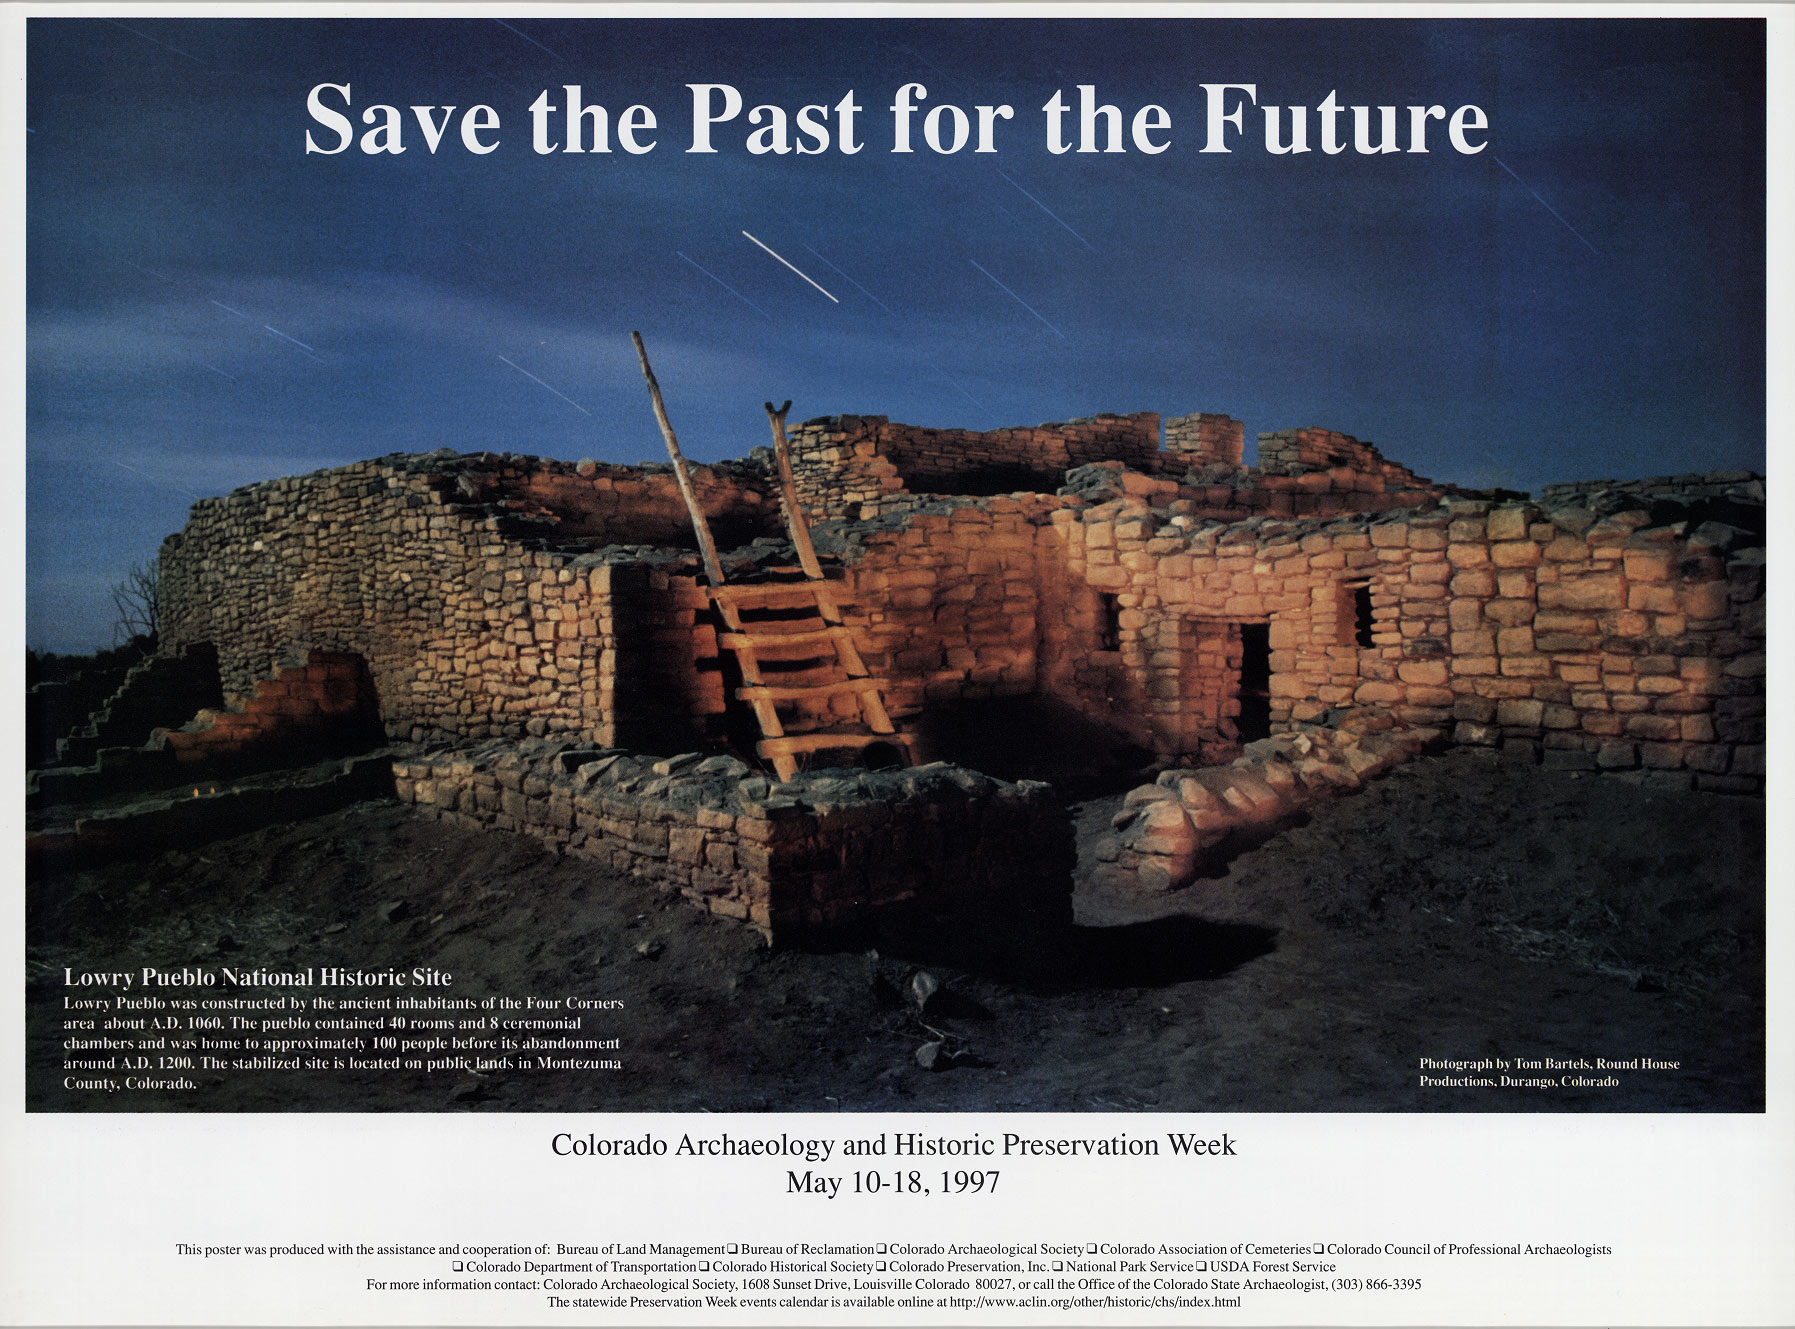 1997 Archaeology & Historic Preservation Week poster.